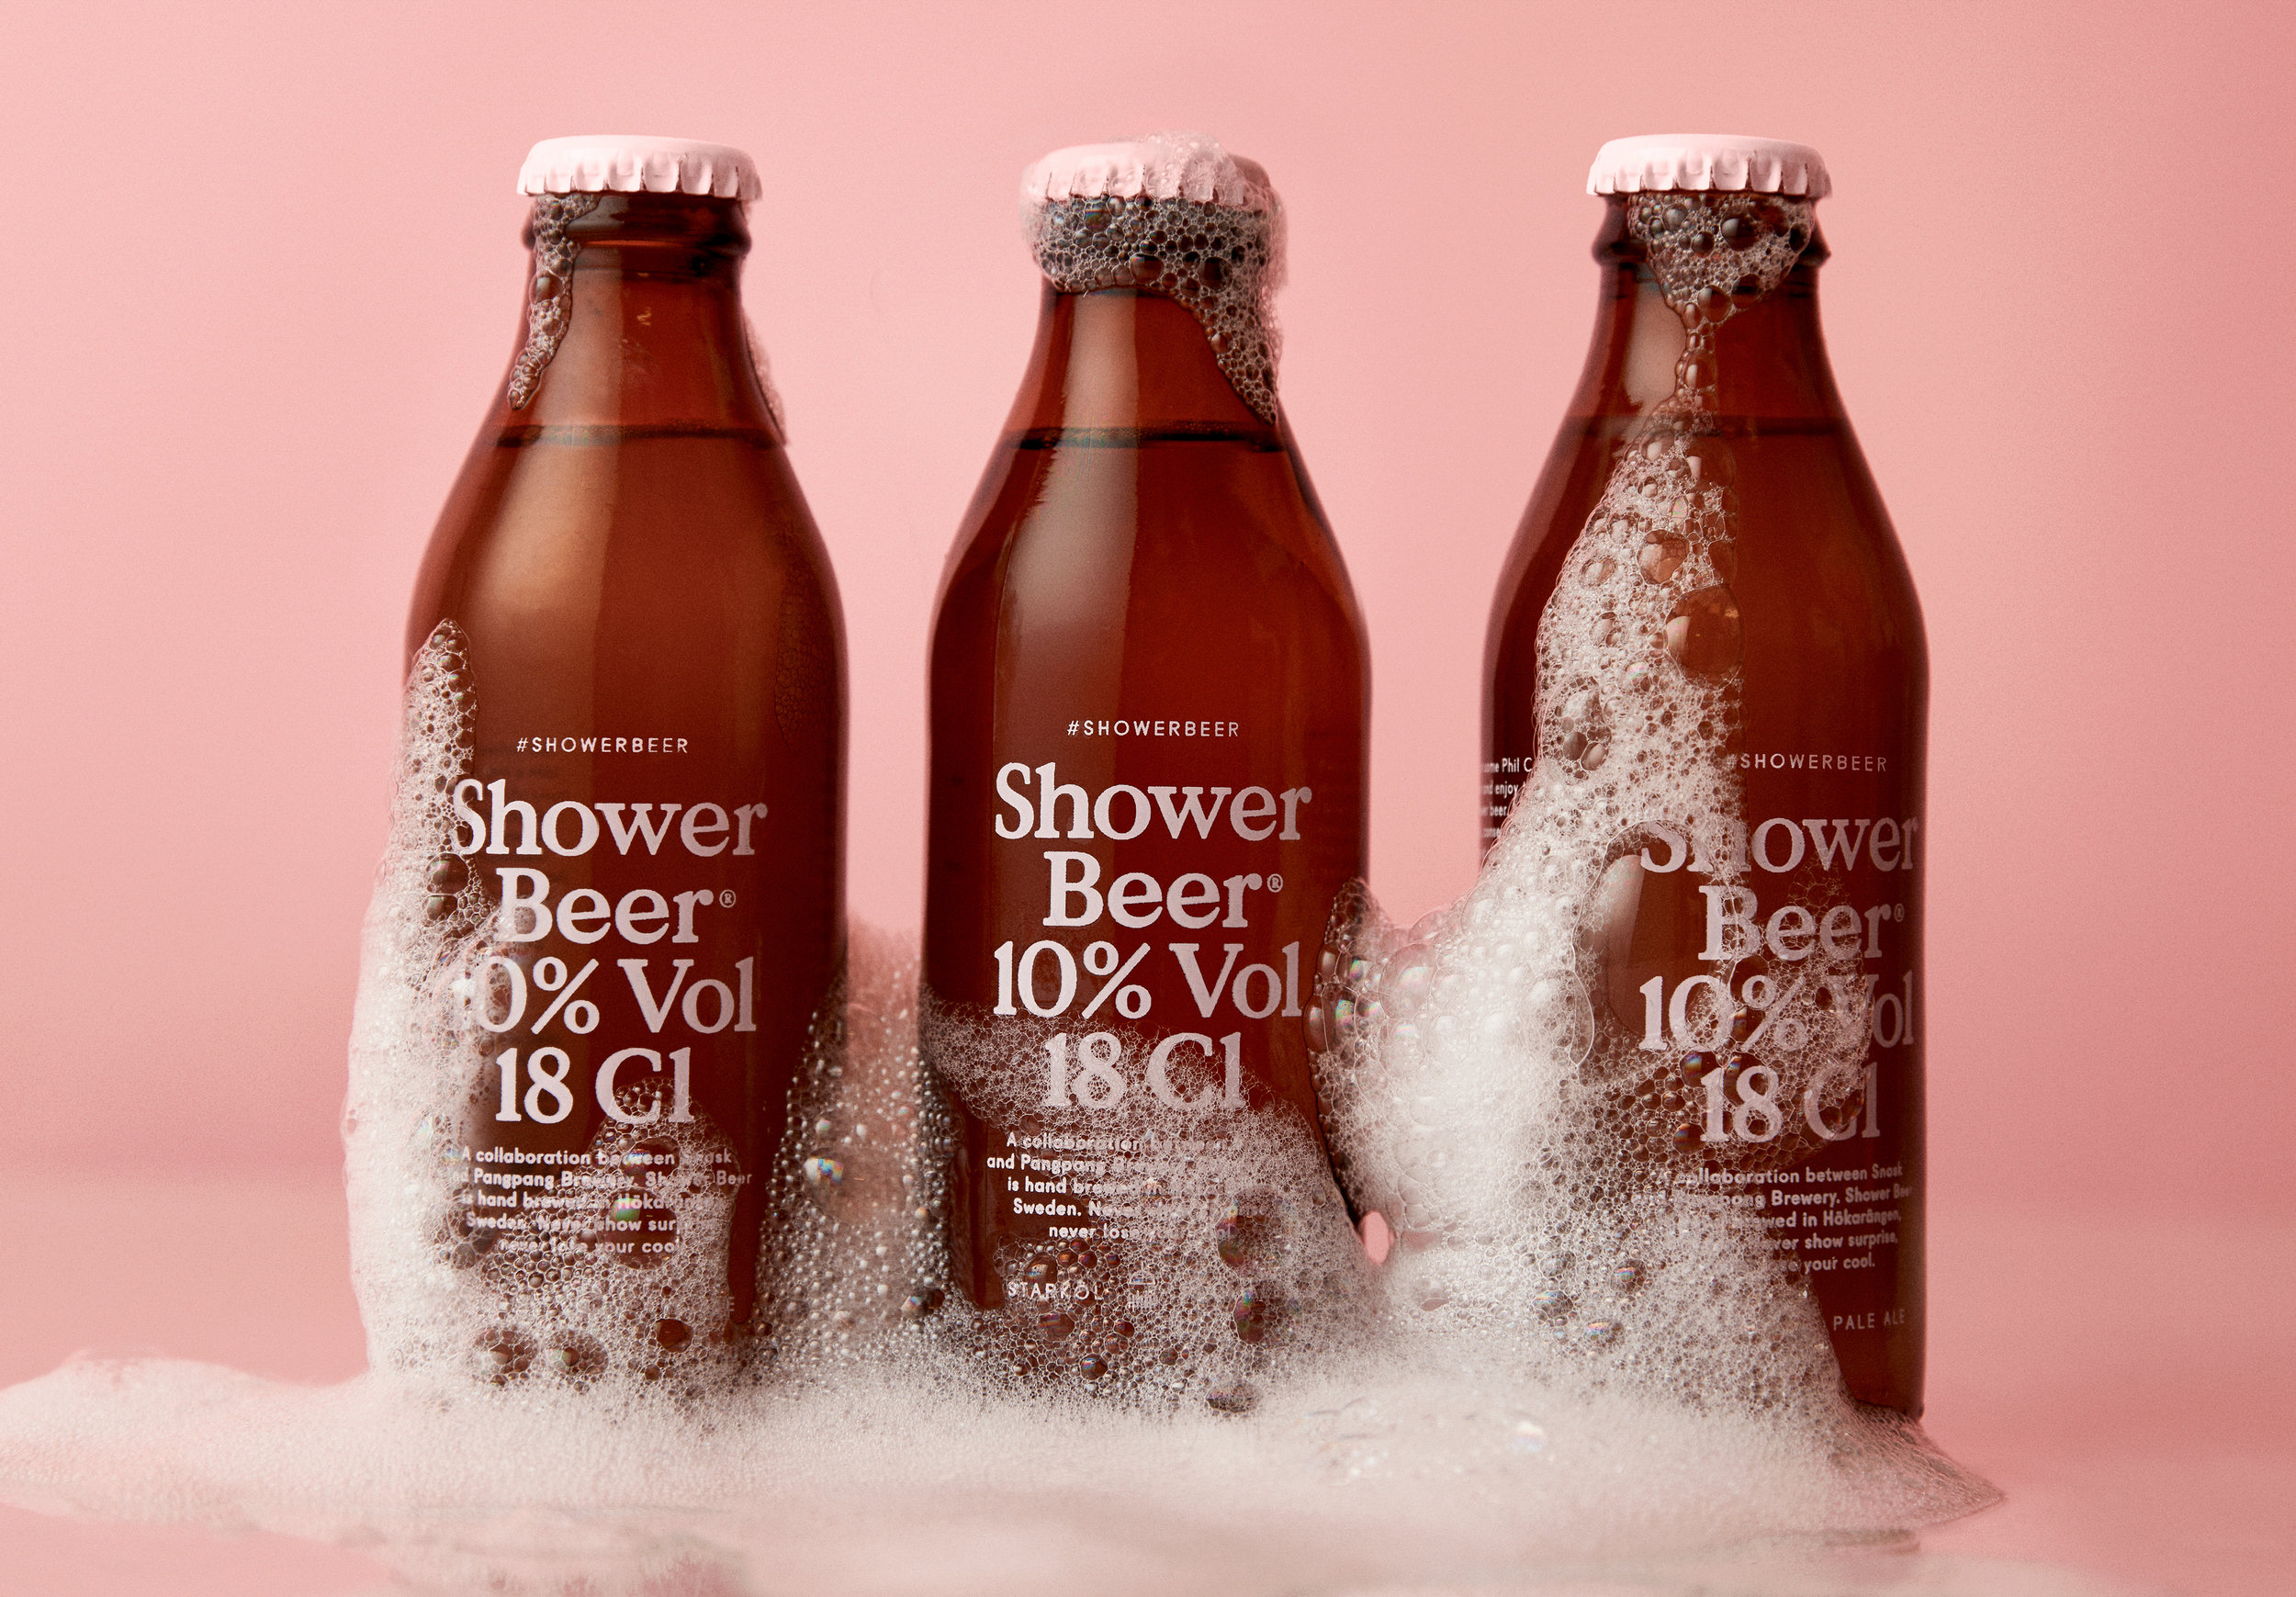 shower-beer_00_bottles-foam_hero.jpg